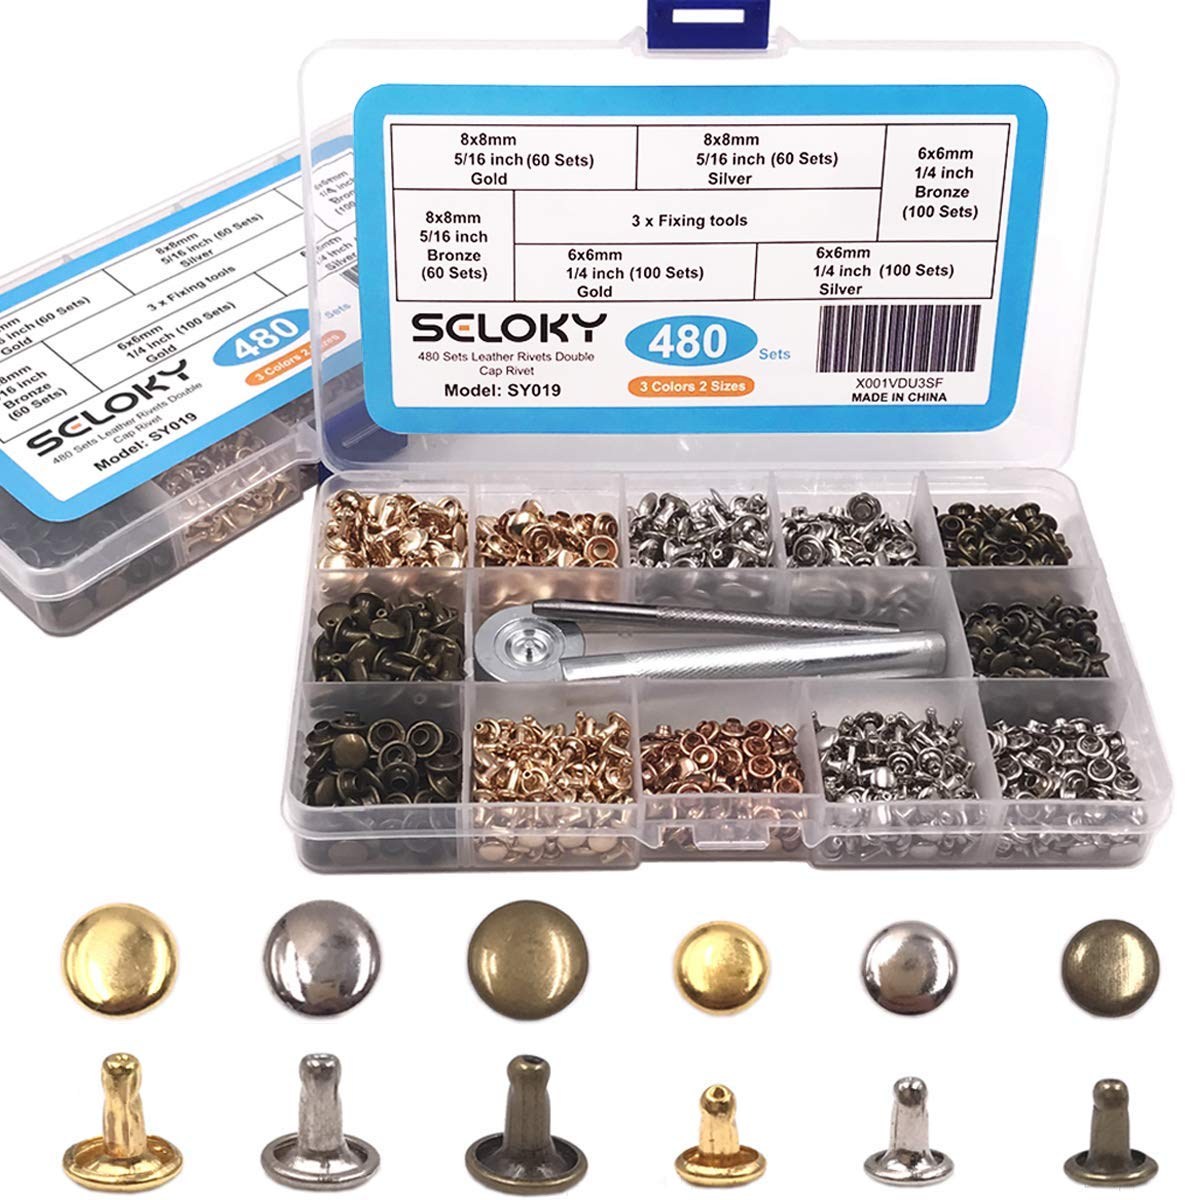 Seloky 480 Sets Leather Rivets Double Cap Rivet Tubular 3 Colors 2 Sizes Metal Studs with Fixing Tools for DIY Craft/Clothes/Shoes/Bags/Belts Repair and Decoration